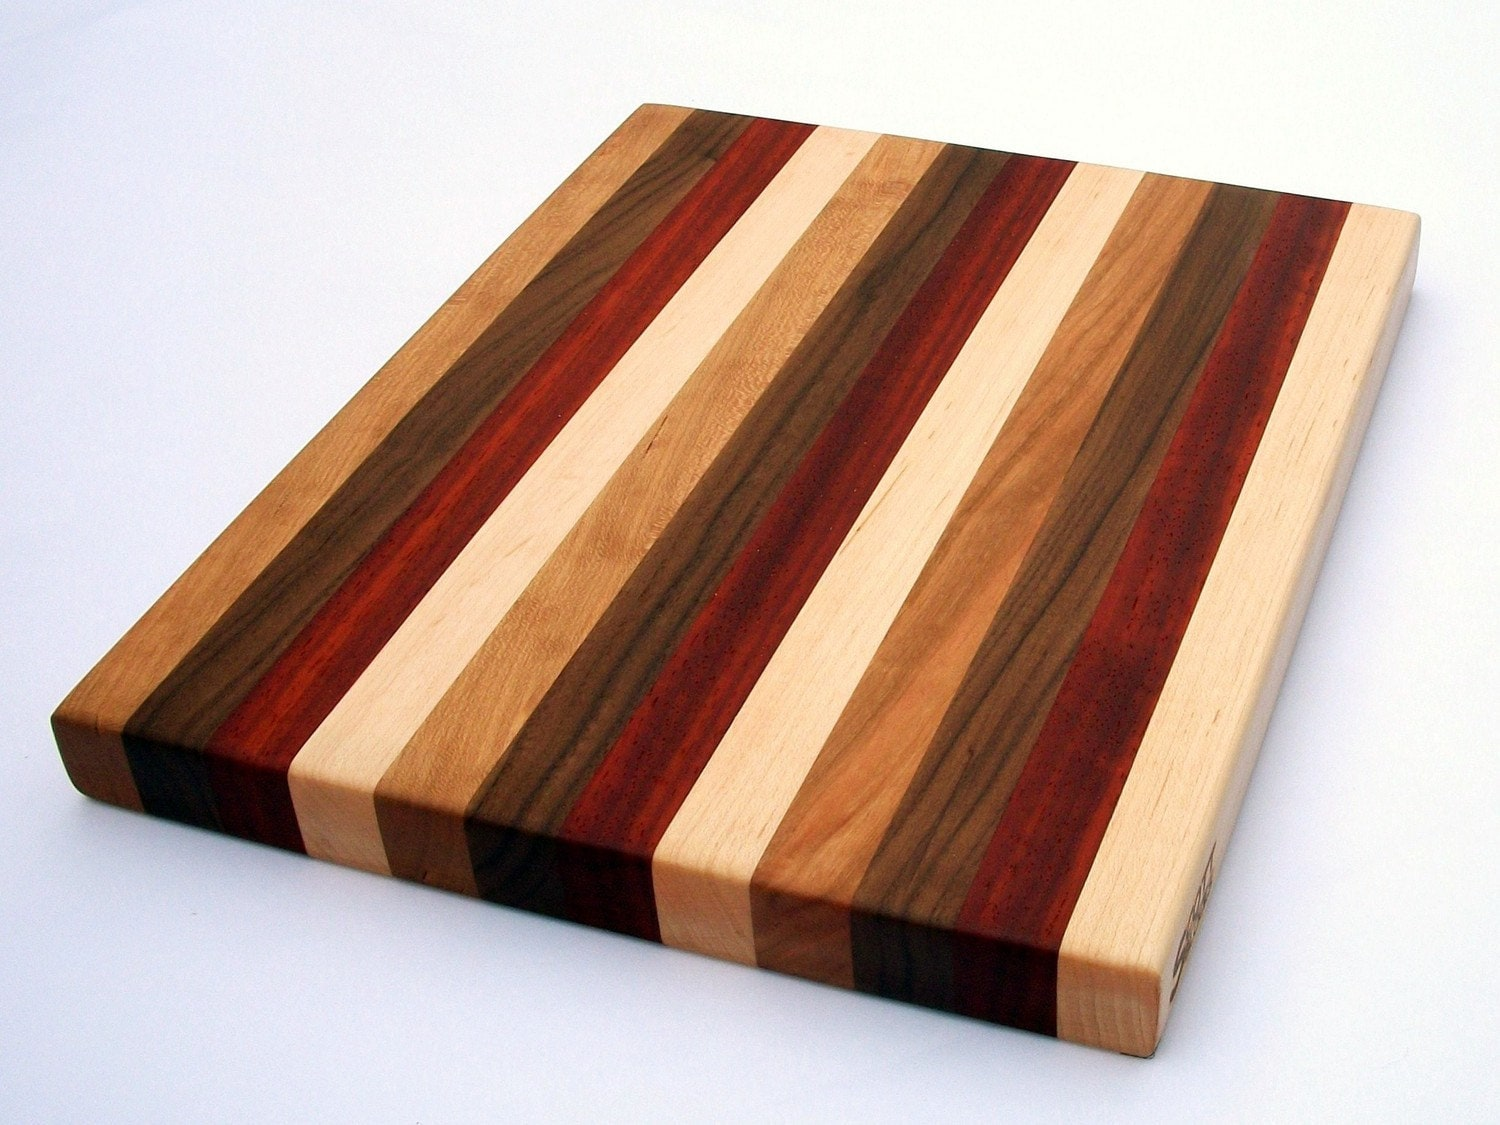 items similar to maple walnut padauk and cherry edge grain wood cutting board on etsy. Black Bedroom Furniture Sets. Home Design Ideas